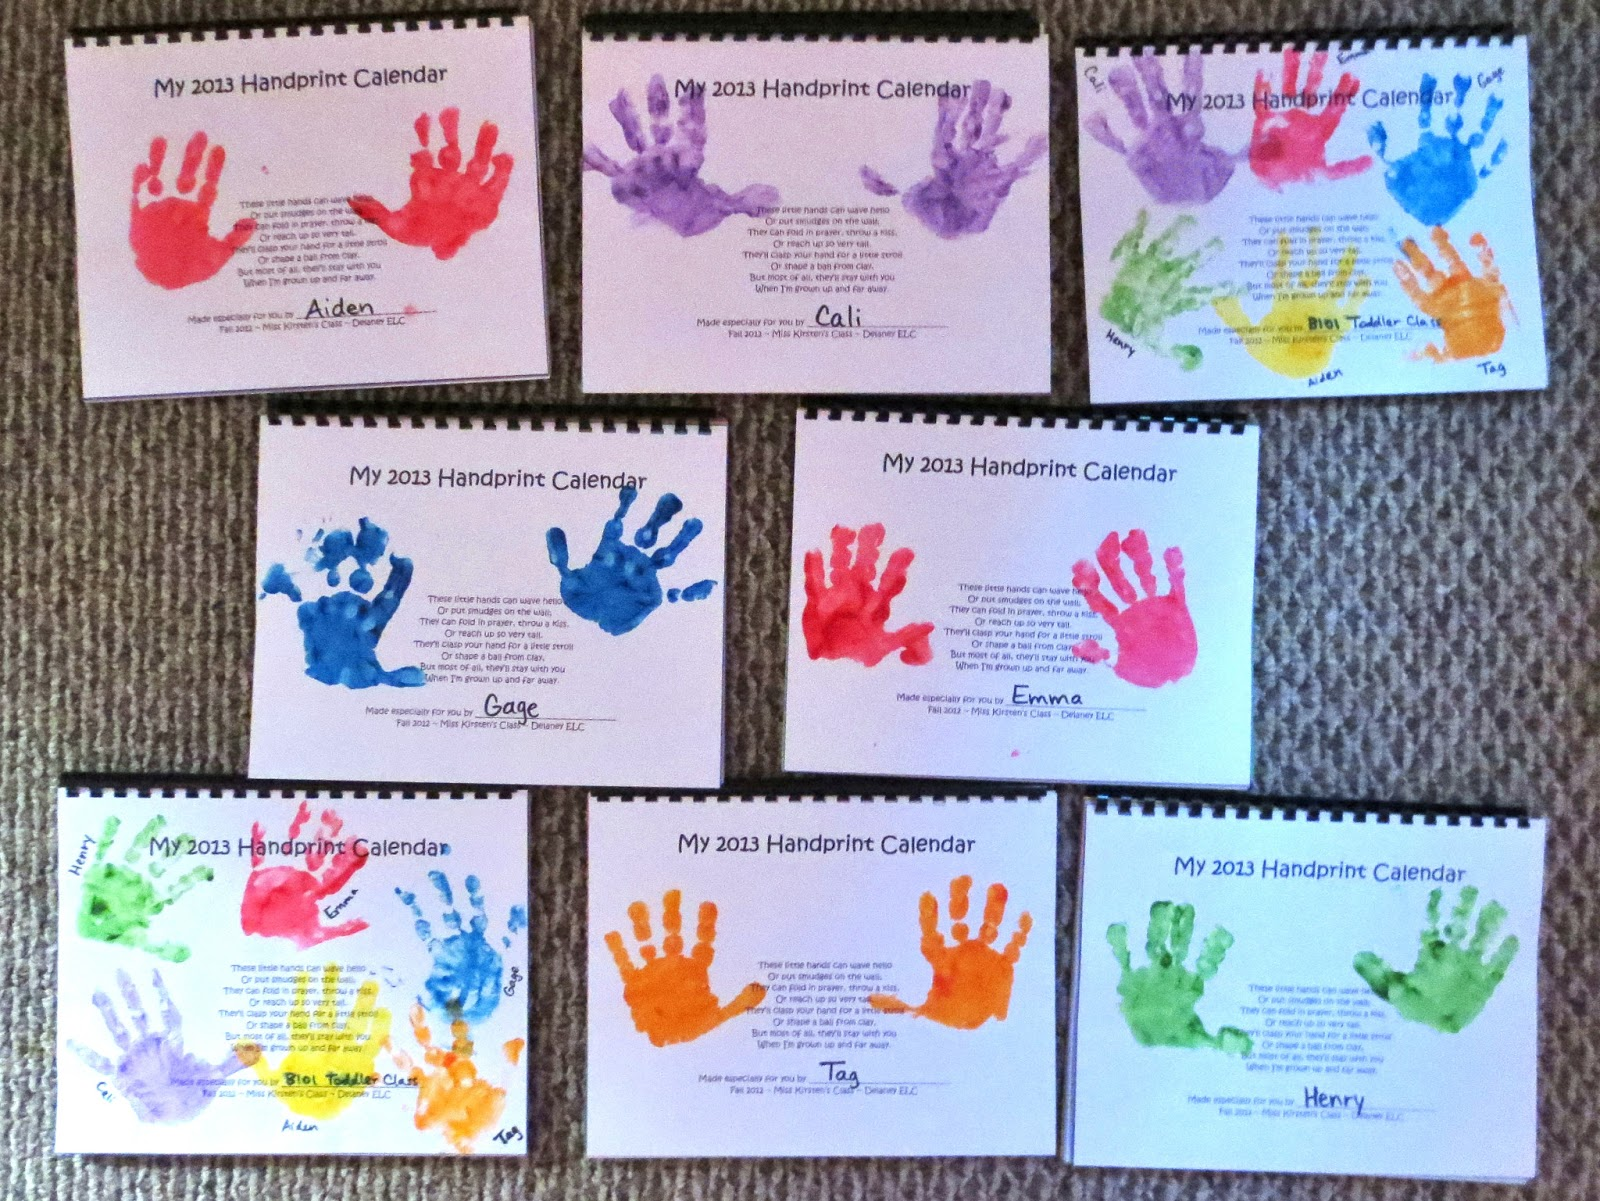 princesses pies preschool pizzazz bible verse handprint calendar